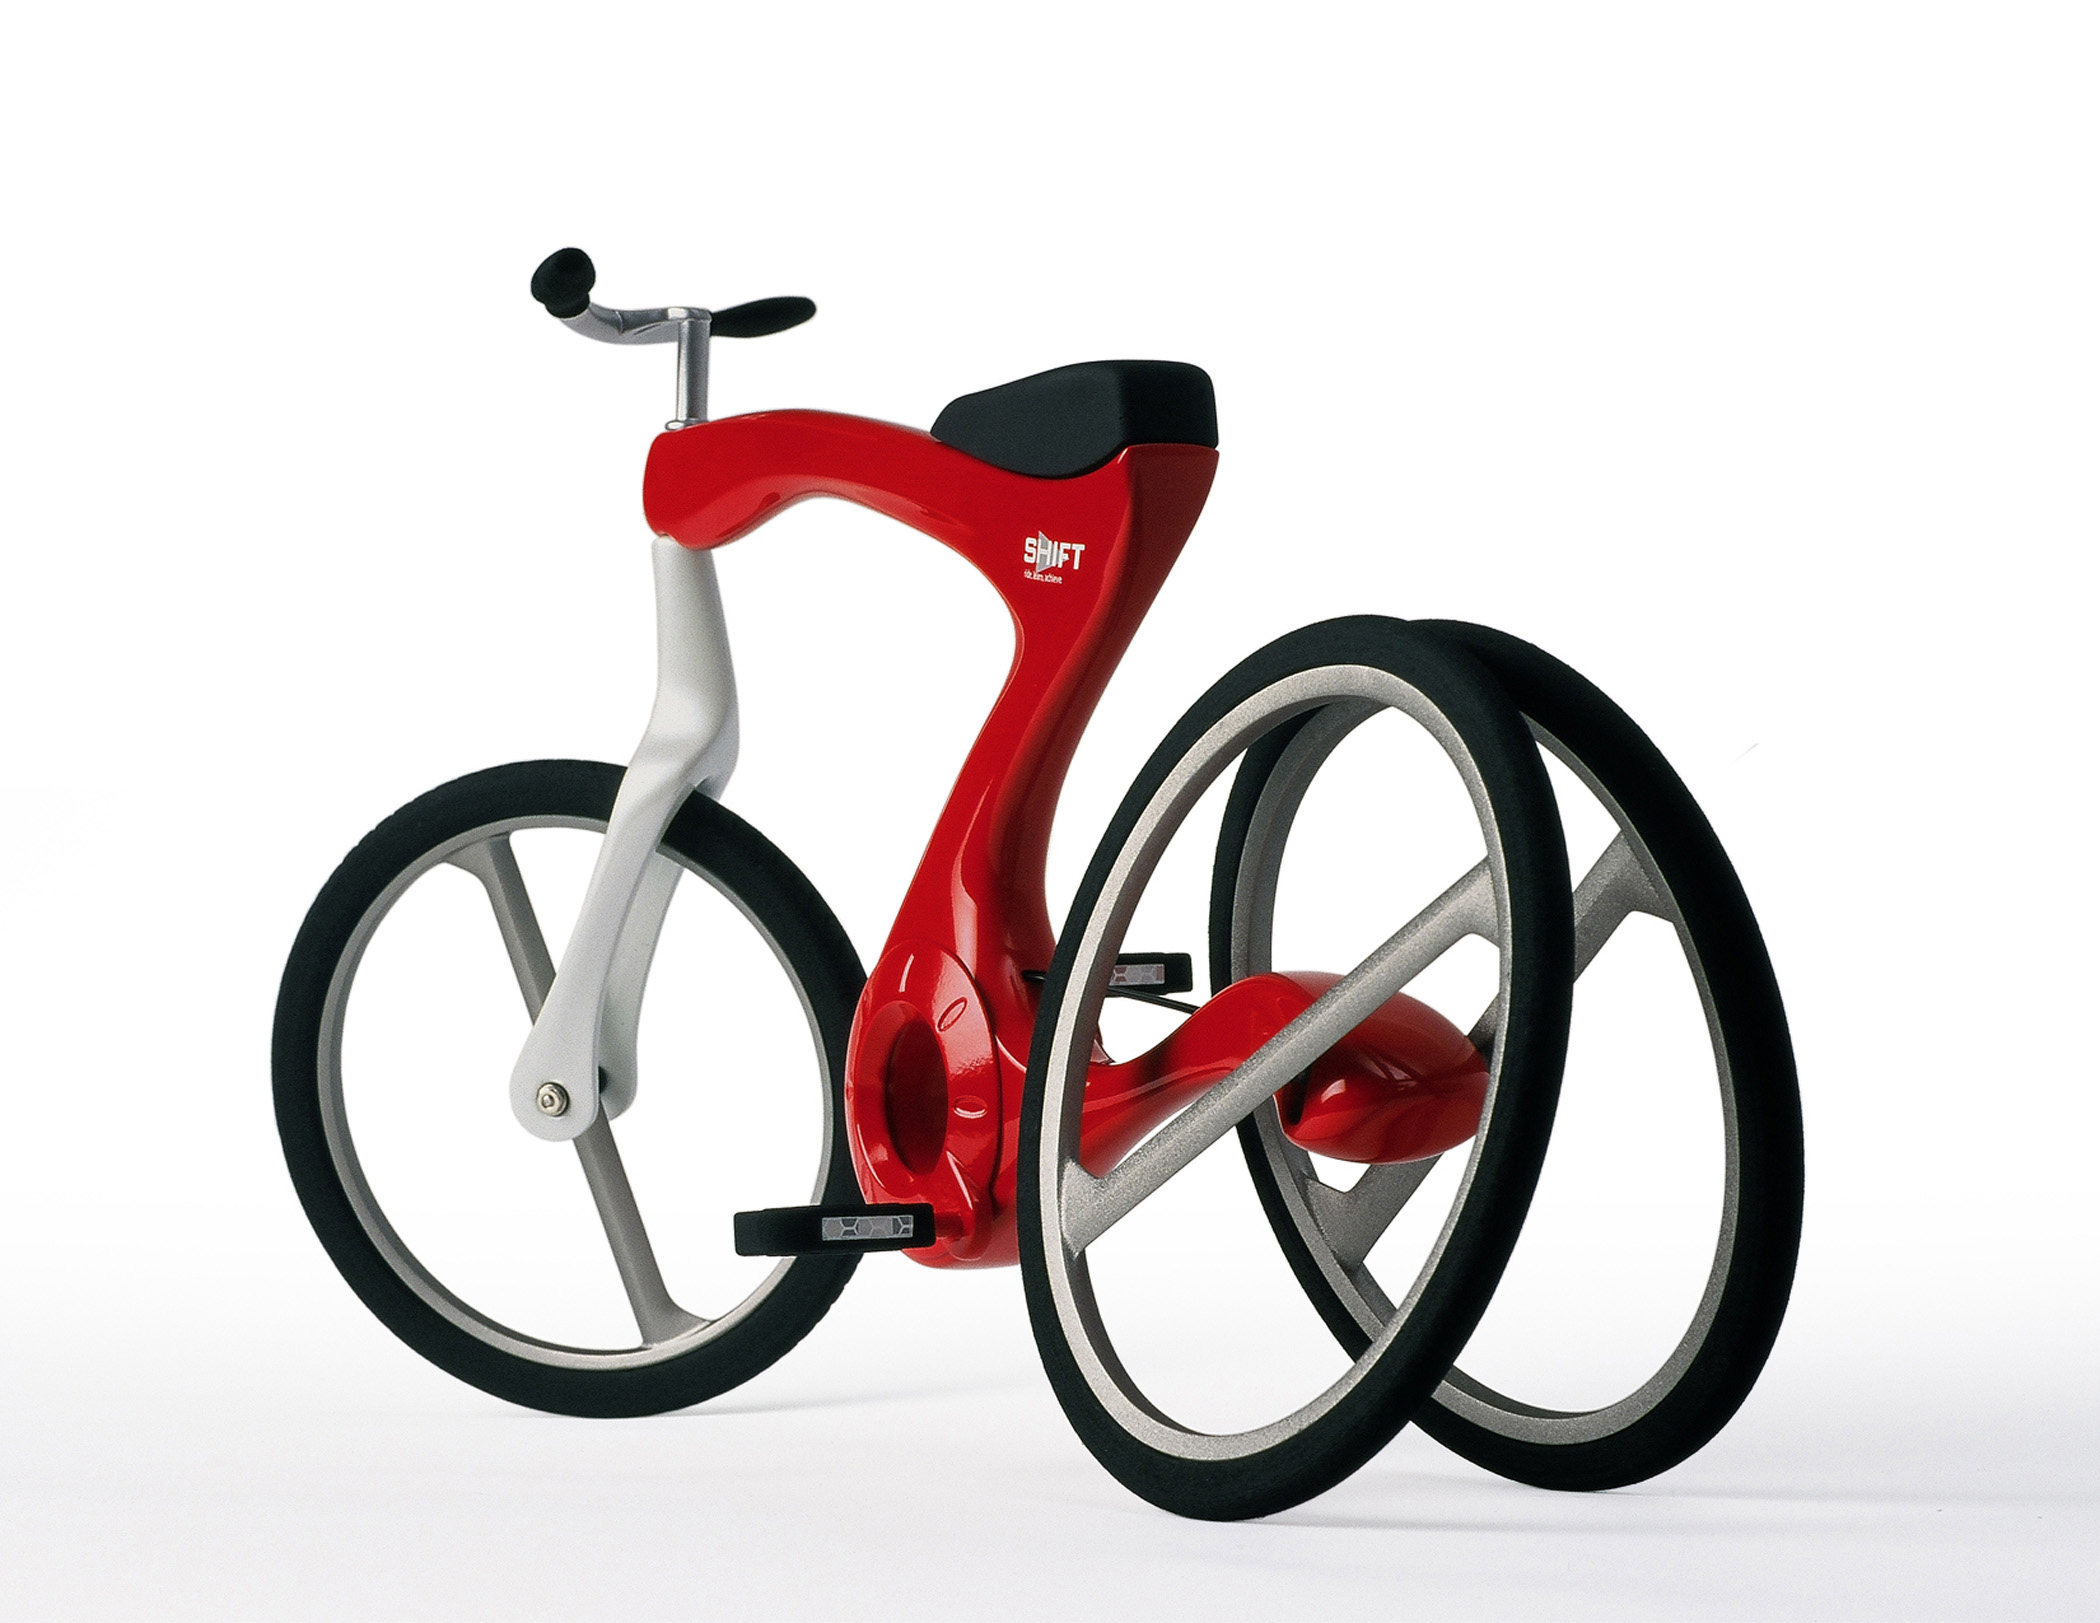 New Bike Design For Toddlers Wins International Competition